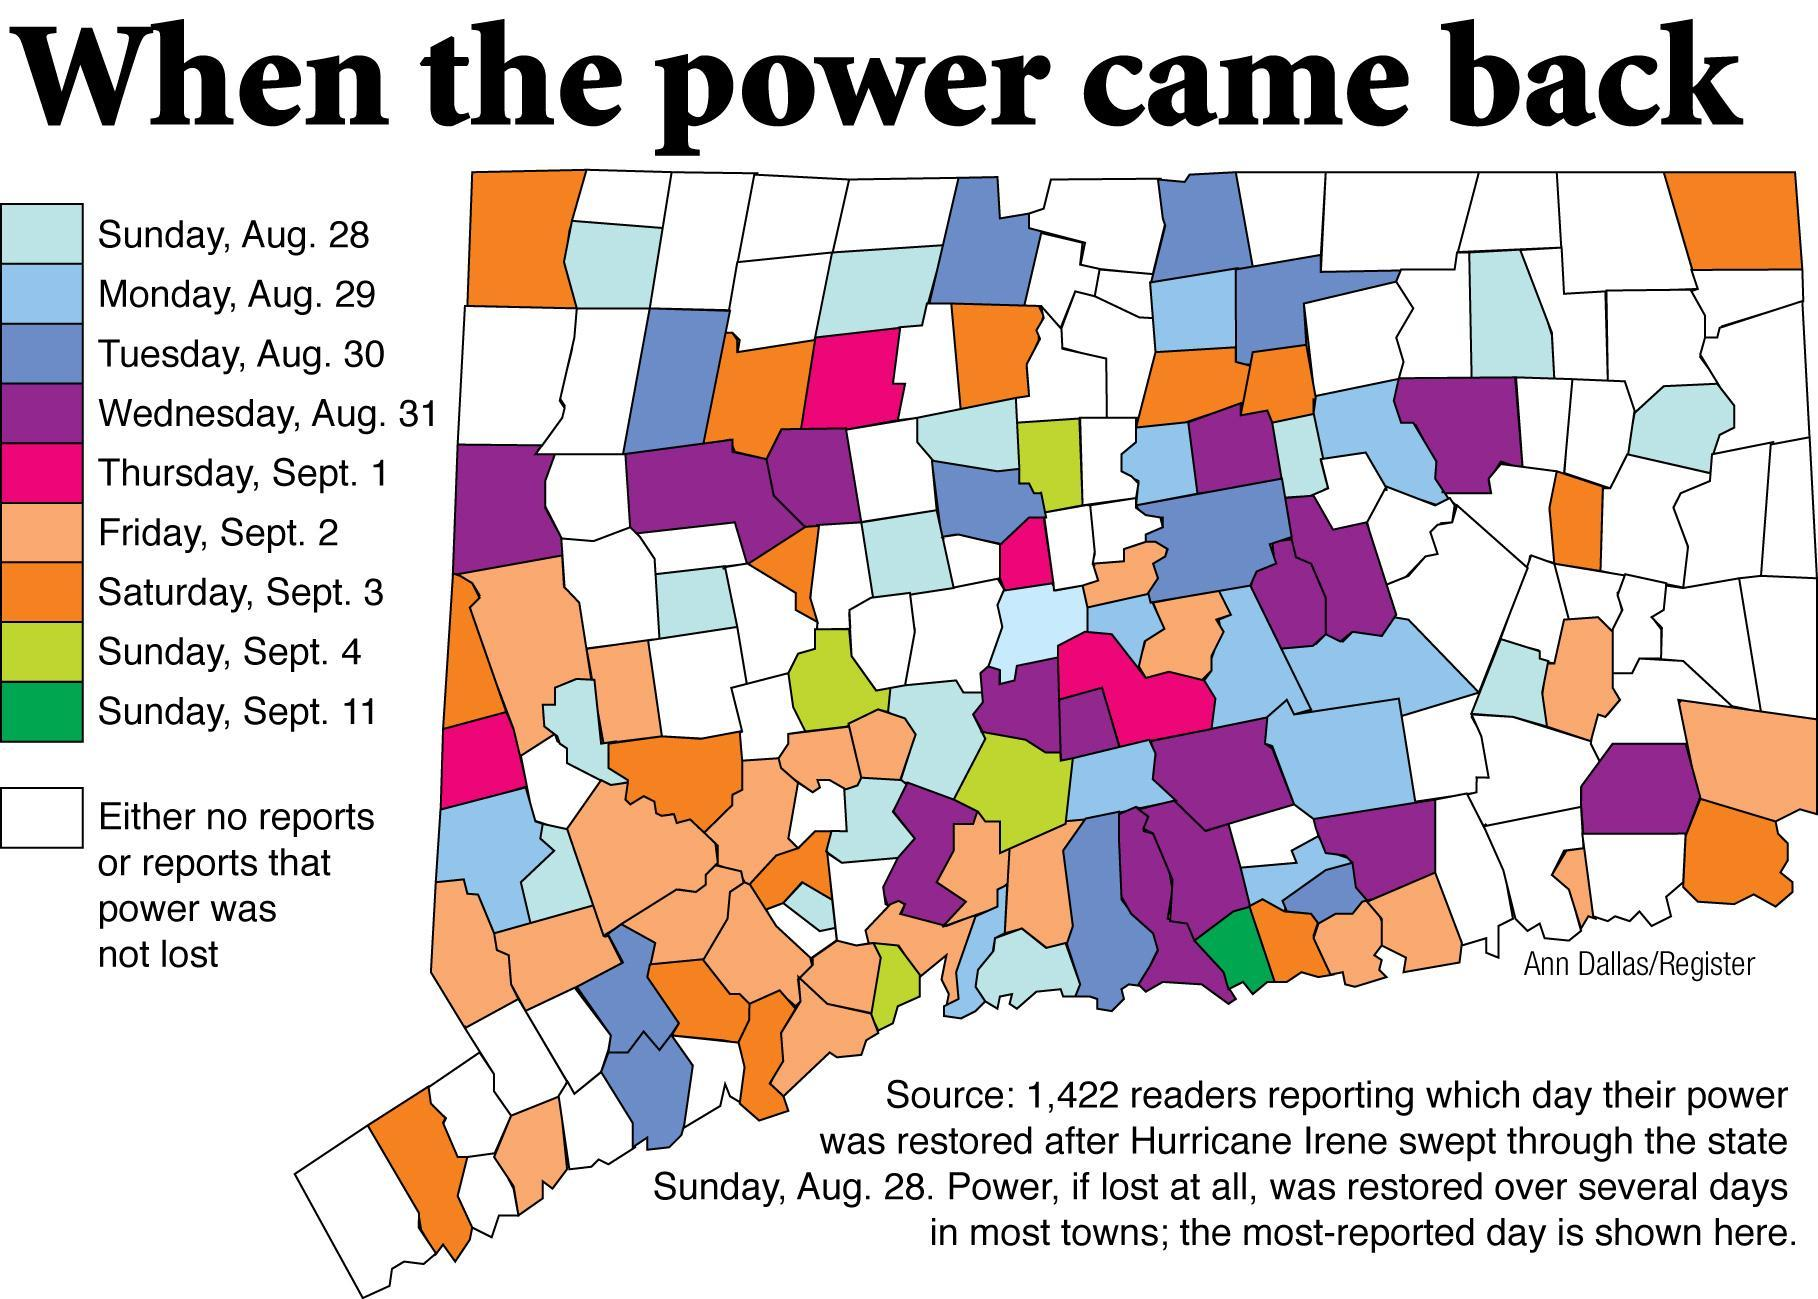 Ct Power Outage Map Ui.Ui Cl P Criticized For Response To Hurricane Irene Power Outages